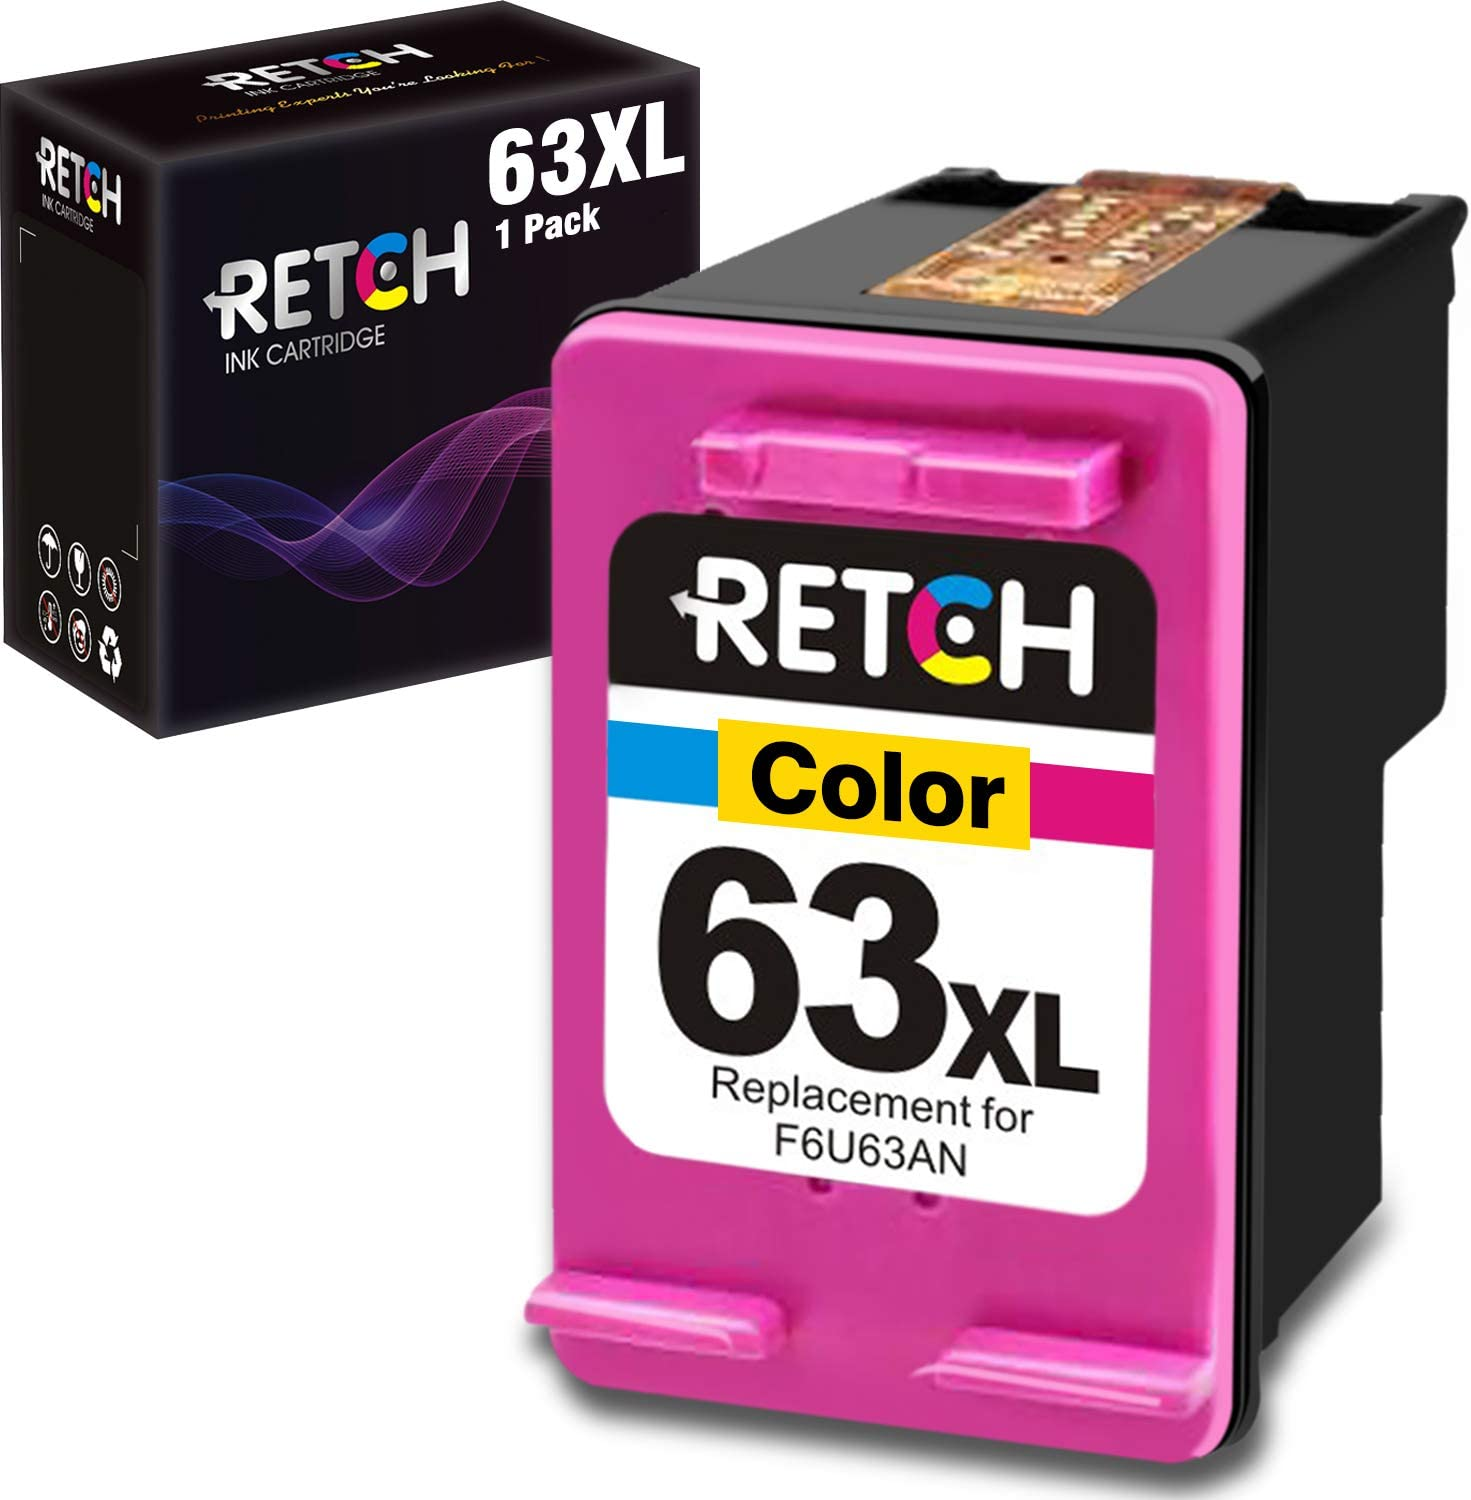 RETCH Remanufactured Tri-color Ink Cartridge inkjet printer Tray Replacement for HP 63XL for Envy 4516 4520 Officejet 3830 3831 3833 4650 4655 5220 5255 5258 DeskJet 1112 2130 2132 3630 3632 3633 3634